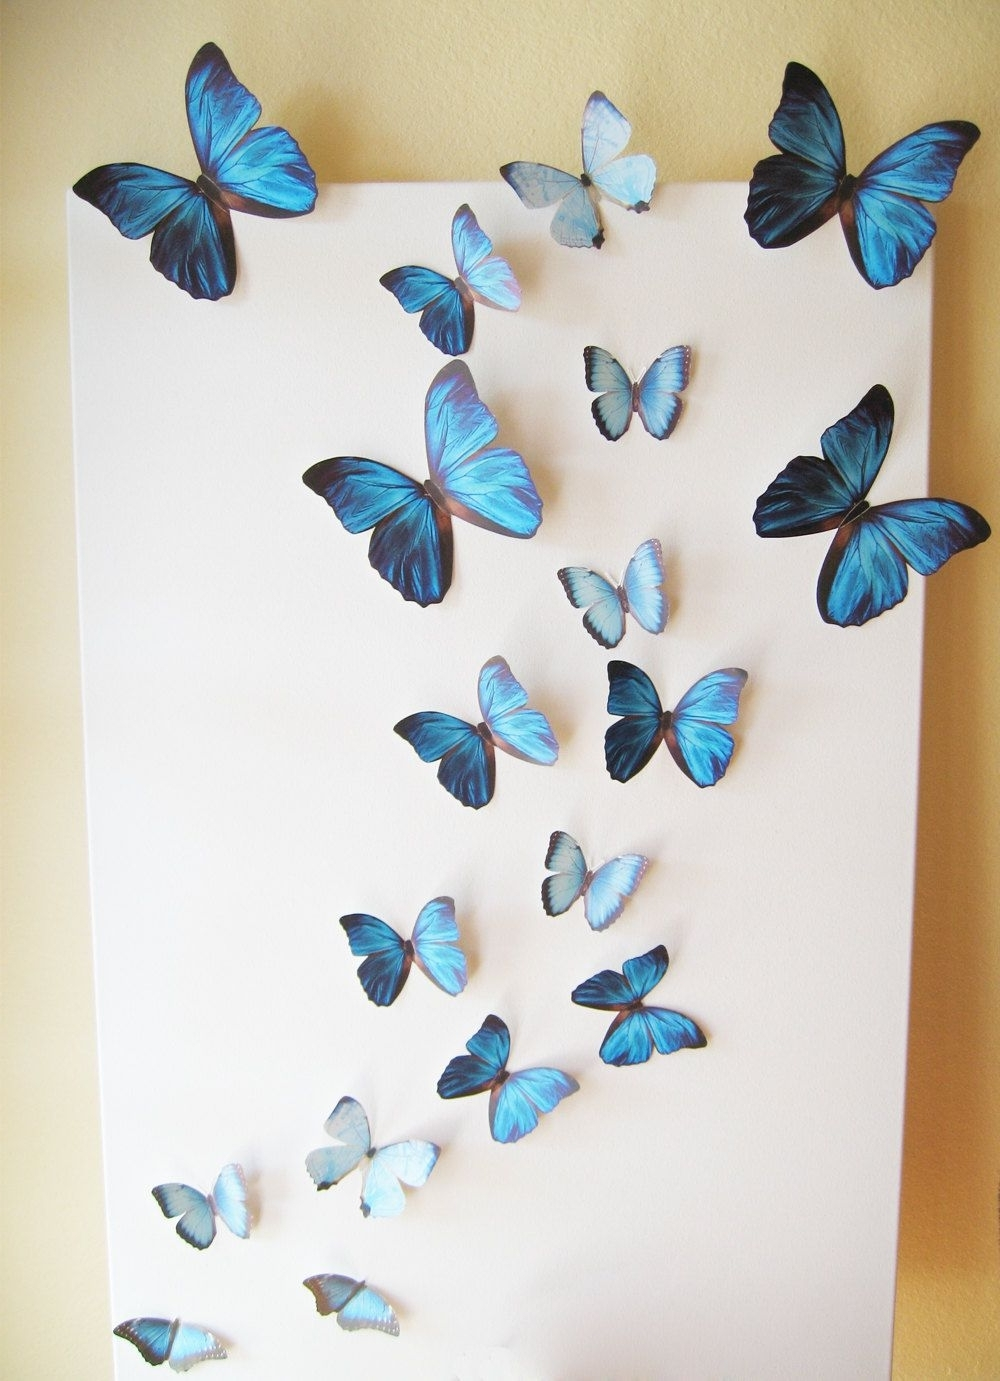 18 Butterflies, Blue, Something Blue, Butterfly, Paper, Wall Decor Regarding 2018 White 3D Butterfly Wall Art (View 1 of 15)